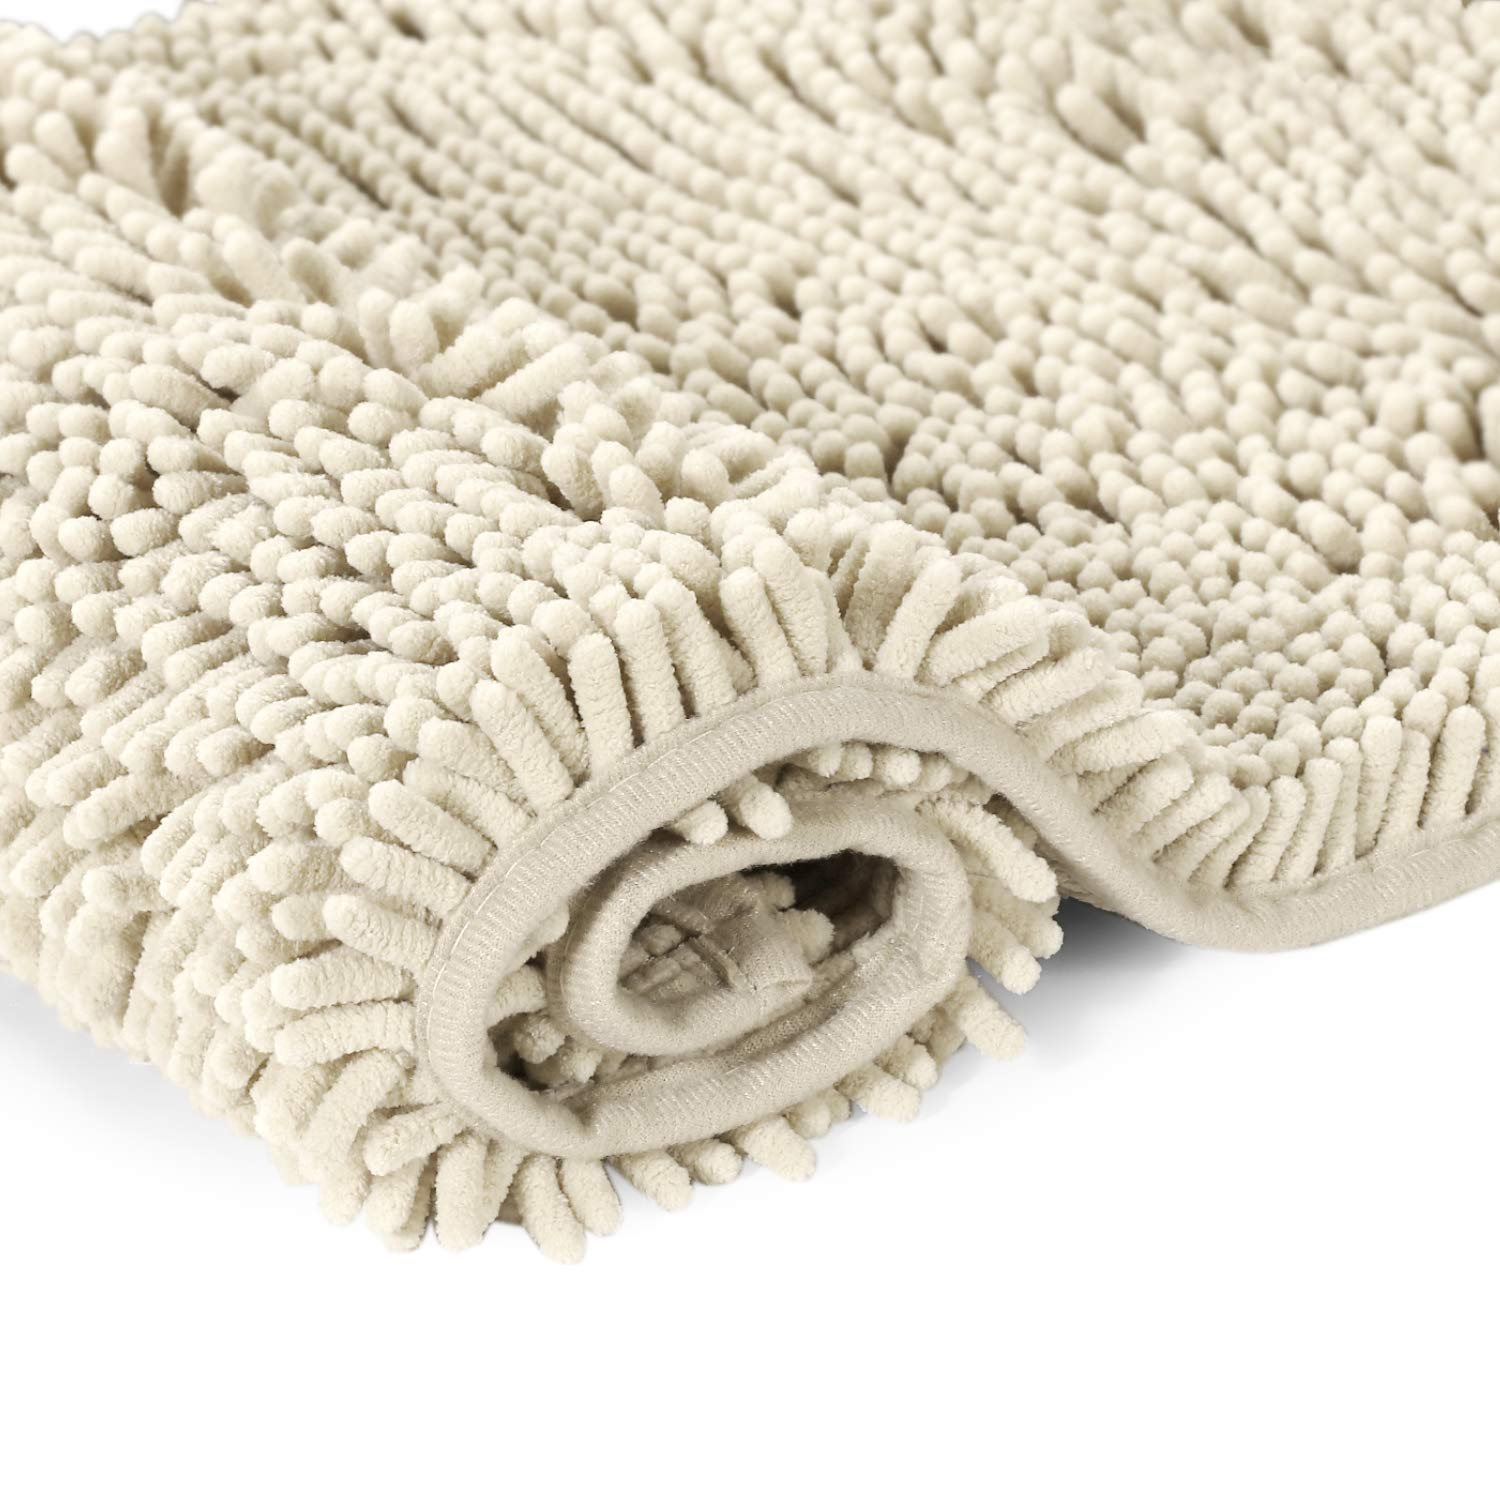 H.Versailtex Soft Absorbent Non Slip Bath Rug Fluffy Microfiber Chenille Bath Mat Bathroom Mat Machine Washable Ivory Shower Rug 50 x 80 CM